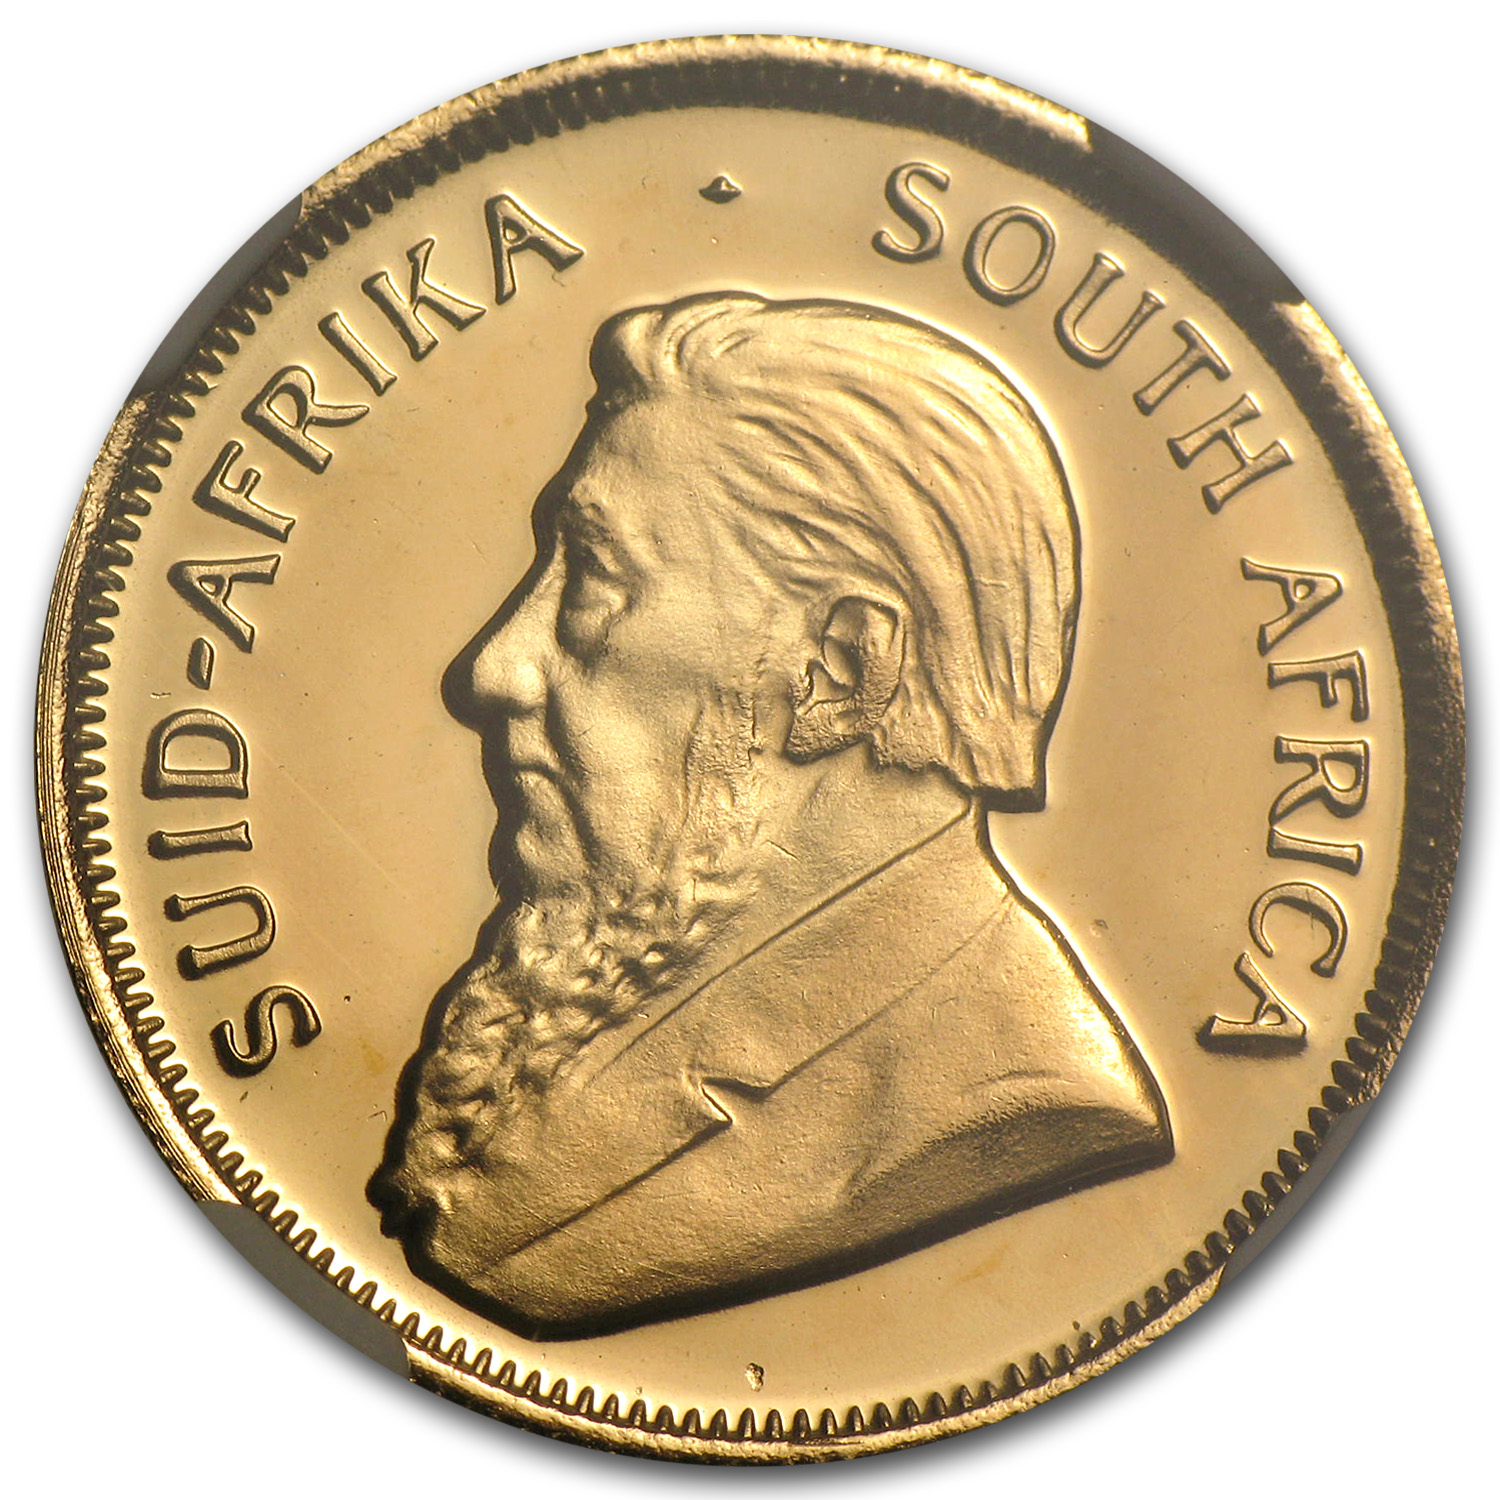 1990 South Africa 1/4 oz Gold Krugerrand PF-67 NGC (GRC)